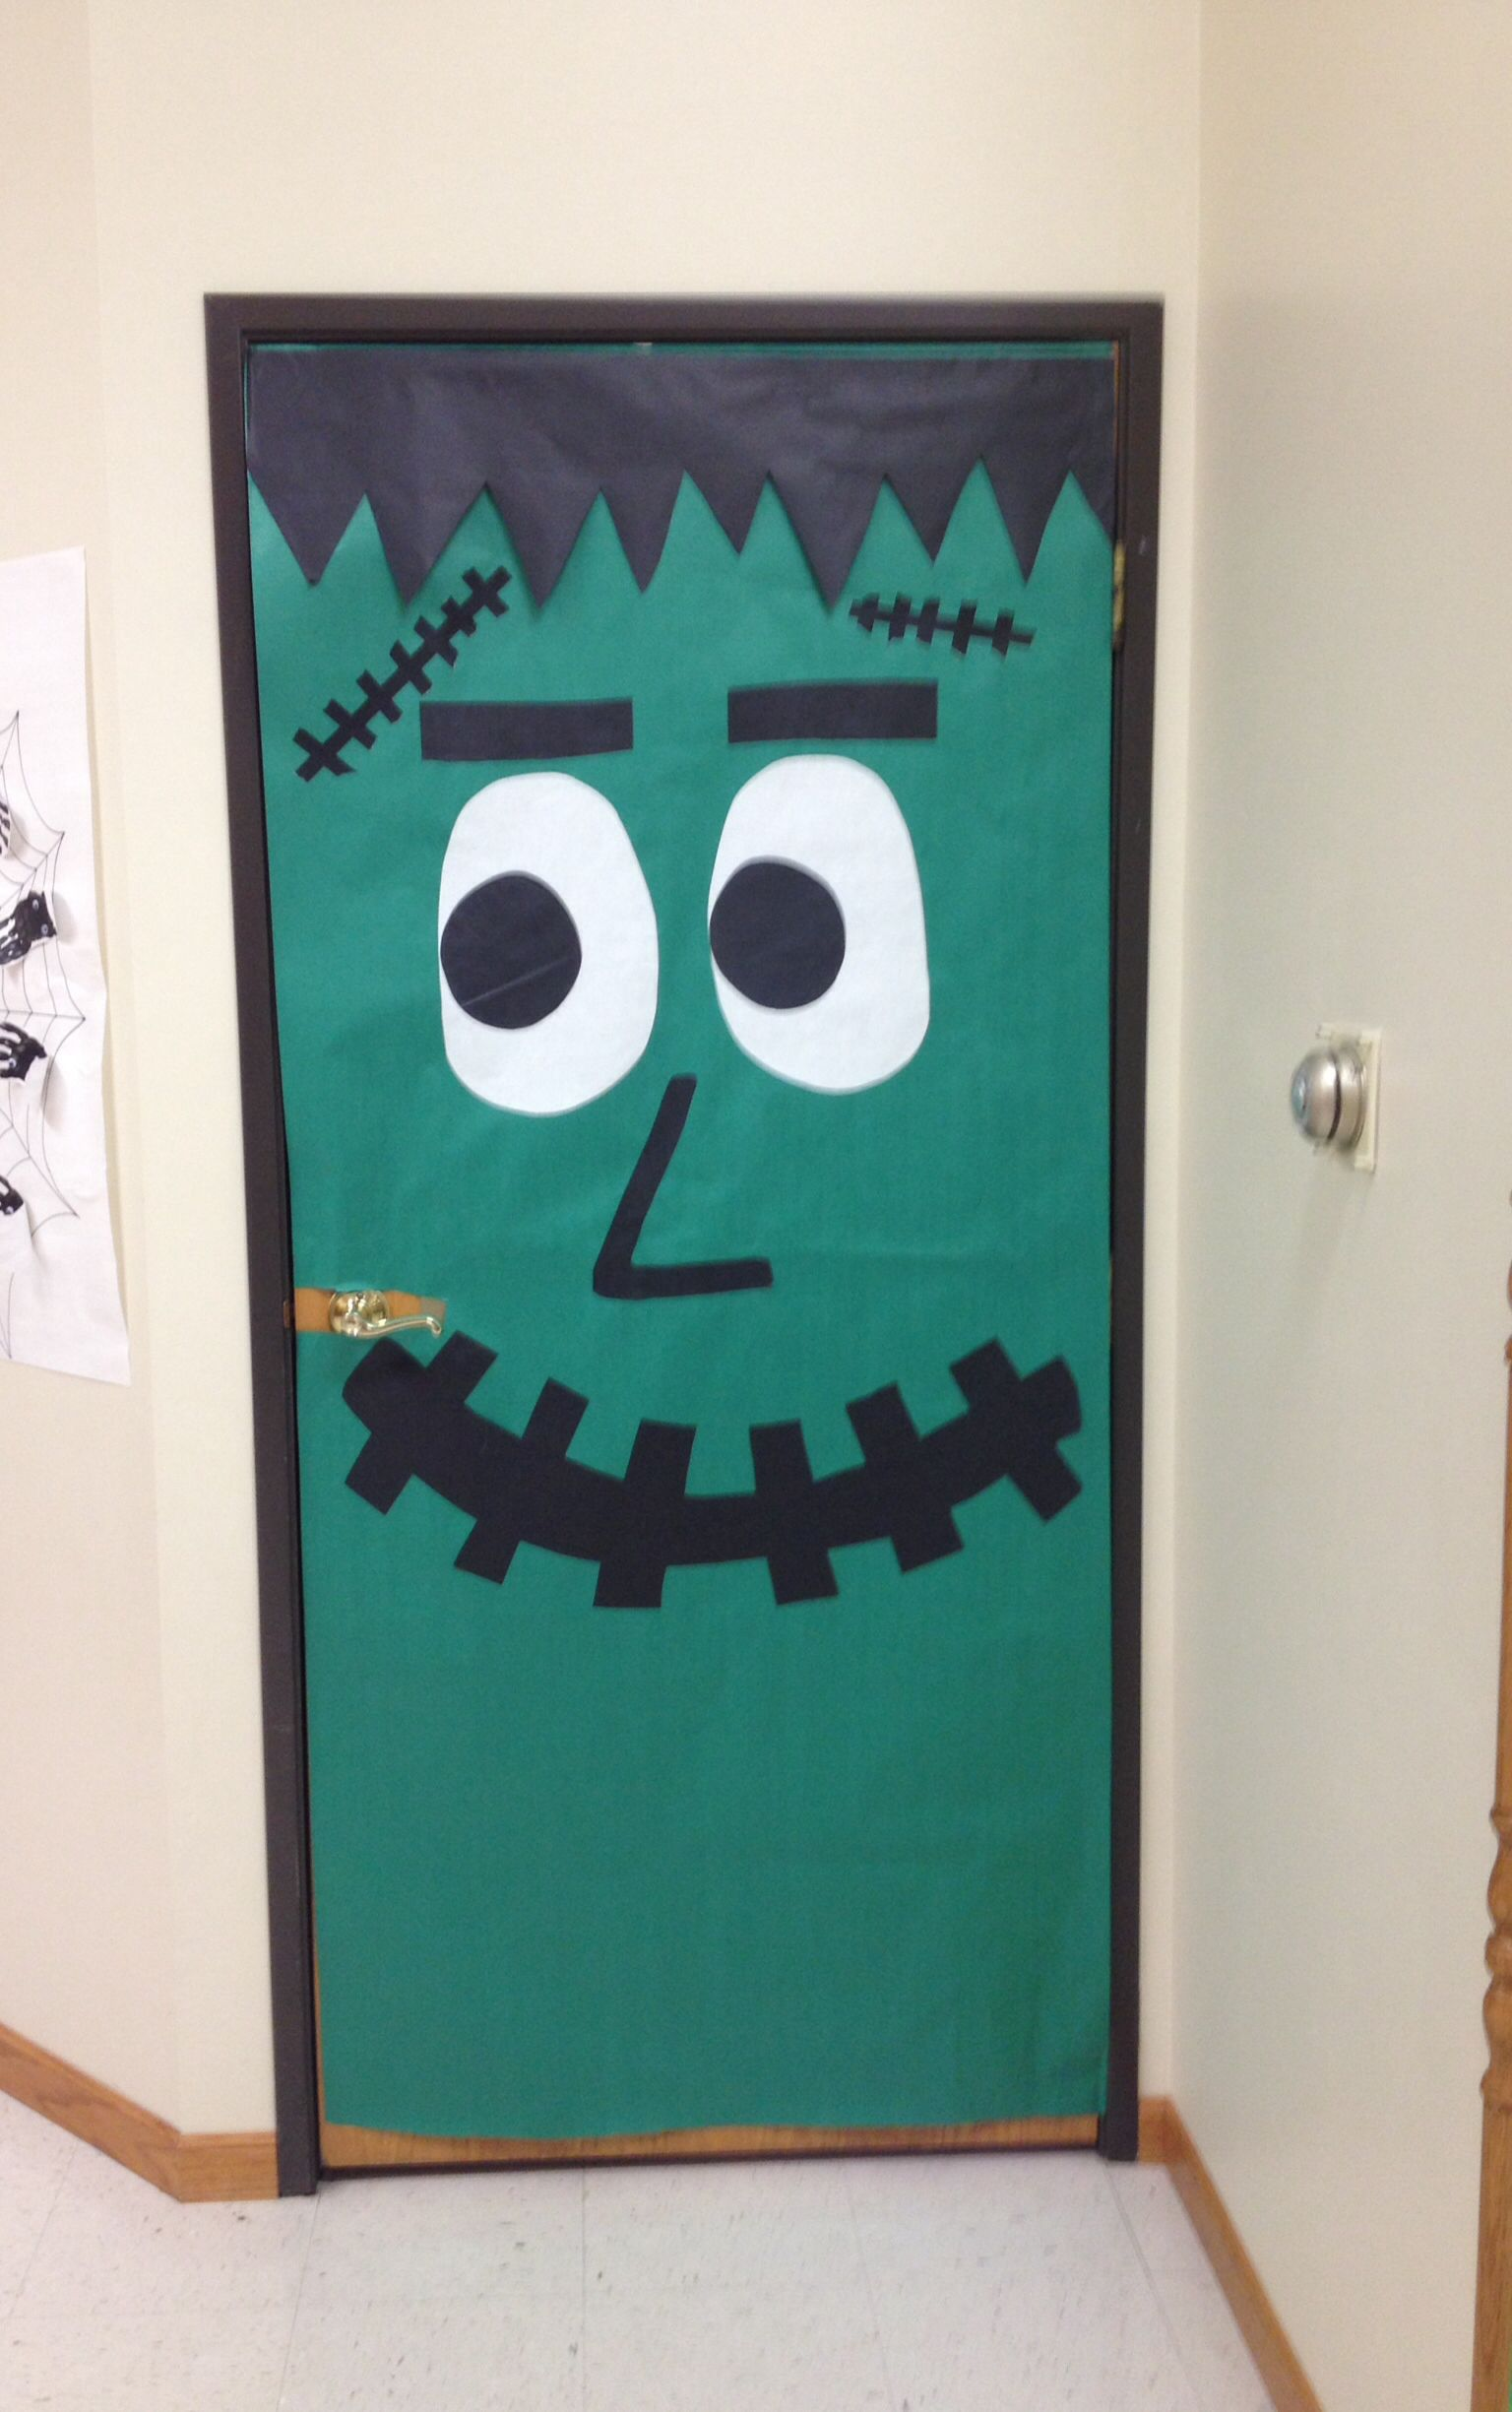 Frankenstein door decoration for Halloween Chamas! Pinterest - Halloween Classroom Door Decorations